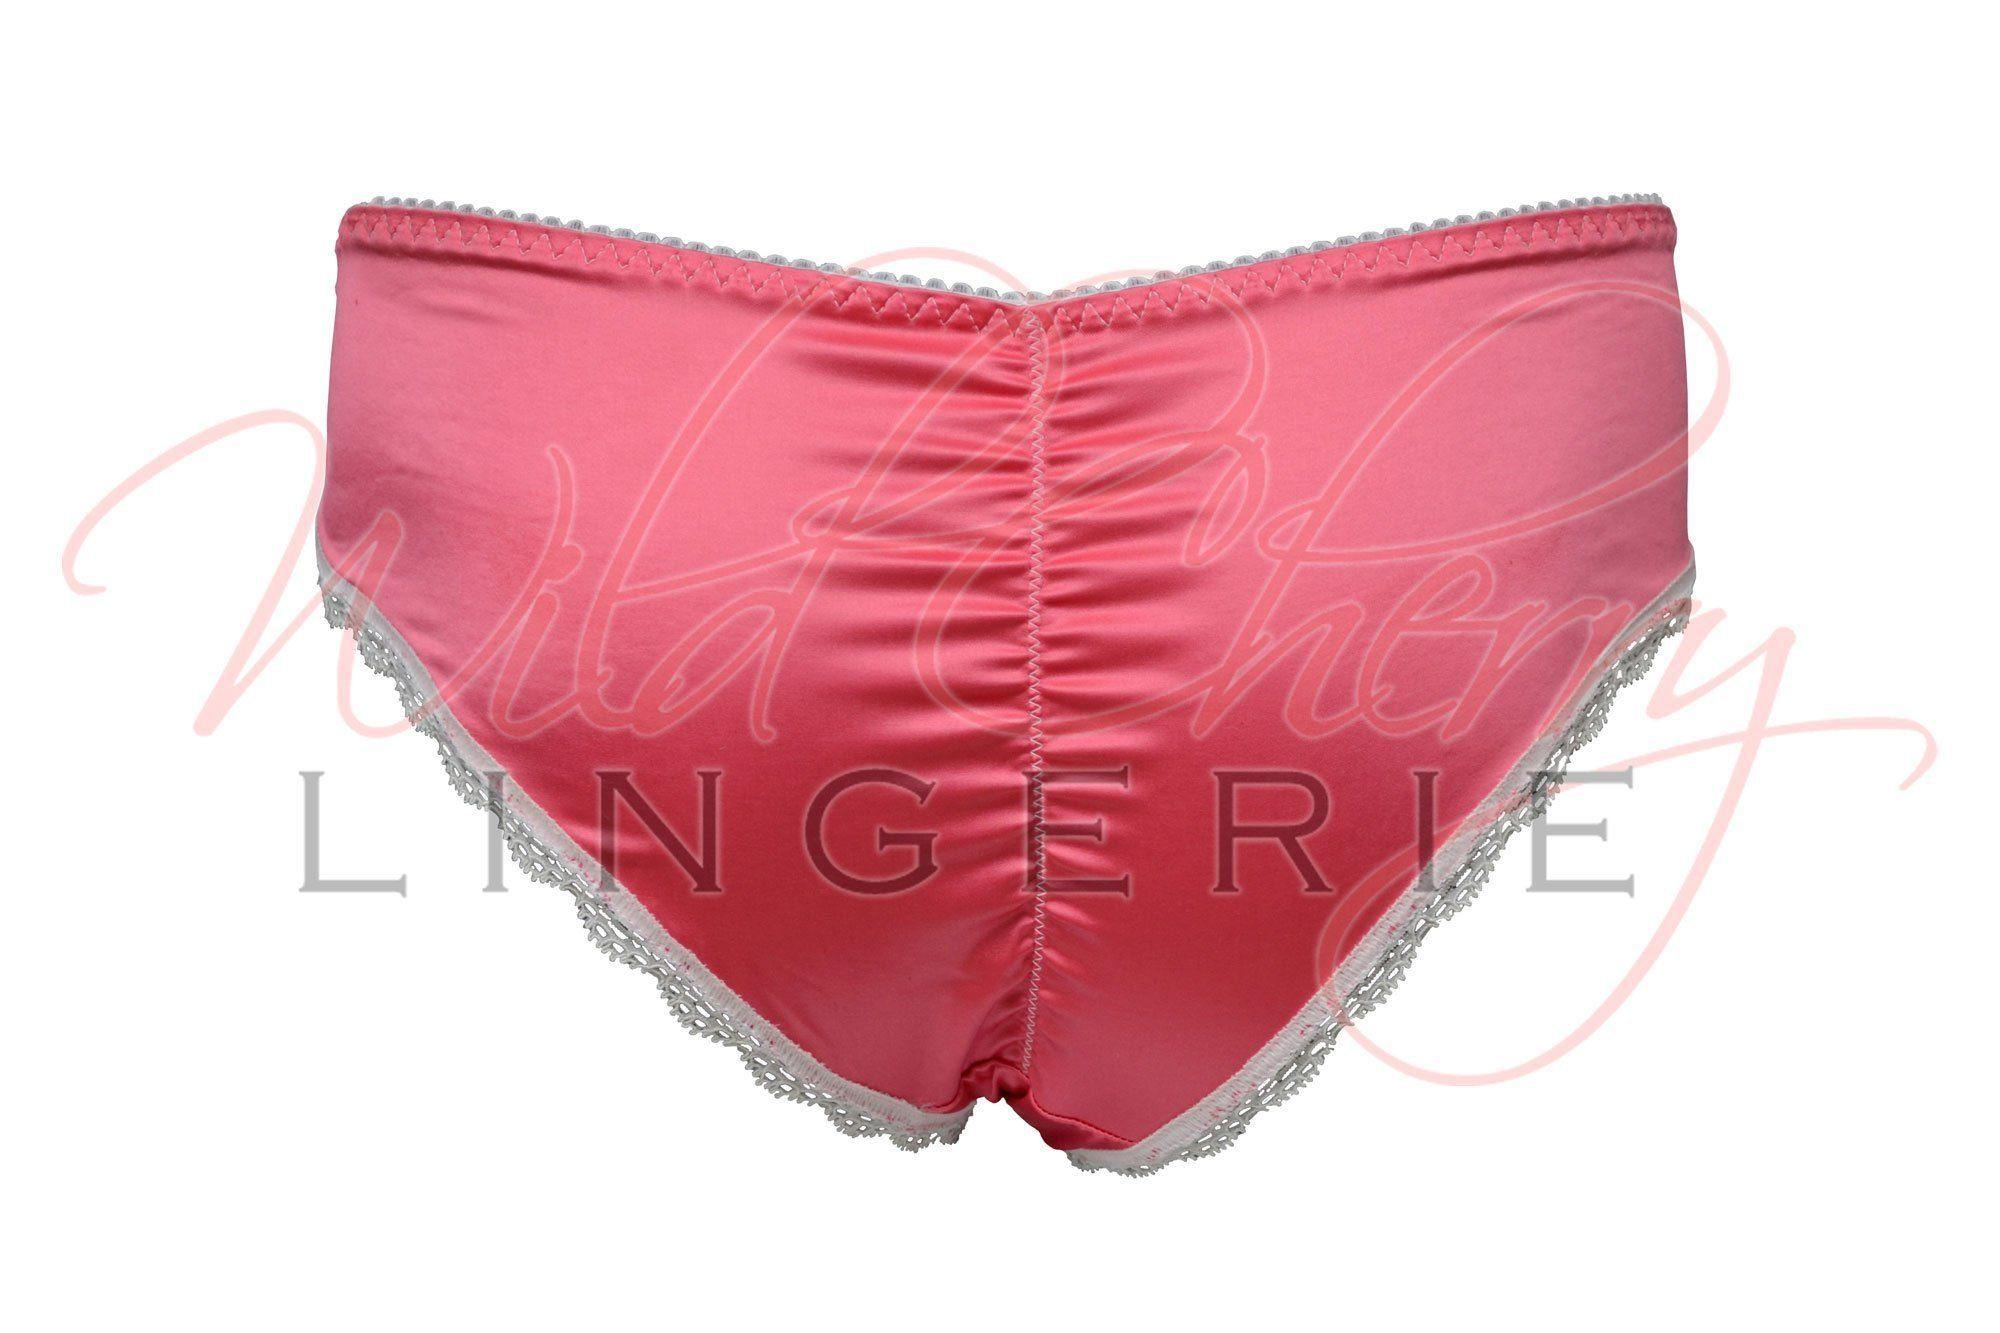 Andrea White Collection Hipster Panties VIPA Lingerie, Panties, VIPA Lingerie - Wild Cherry Lingerie